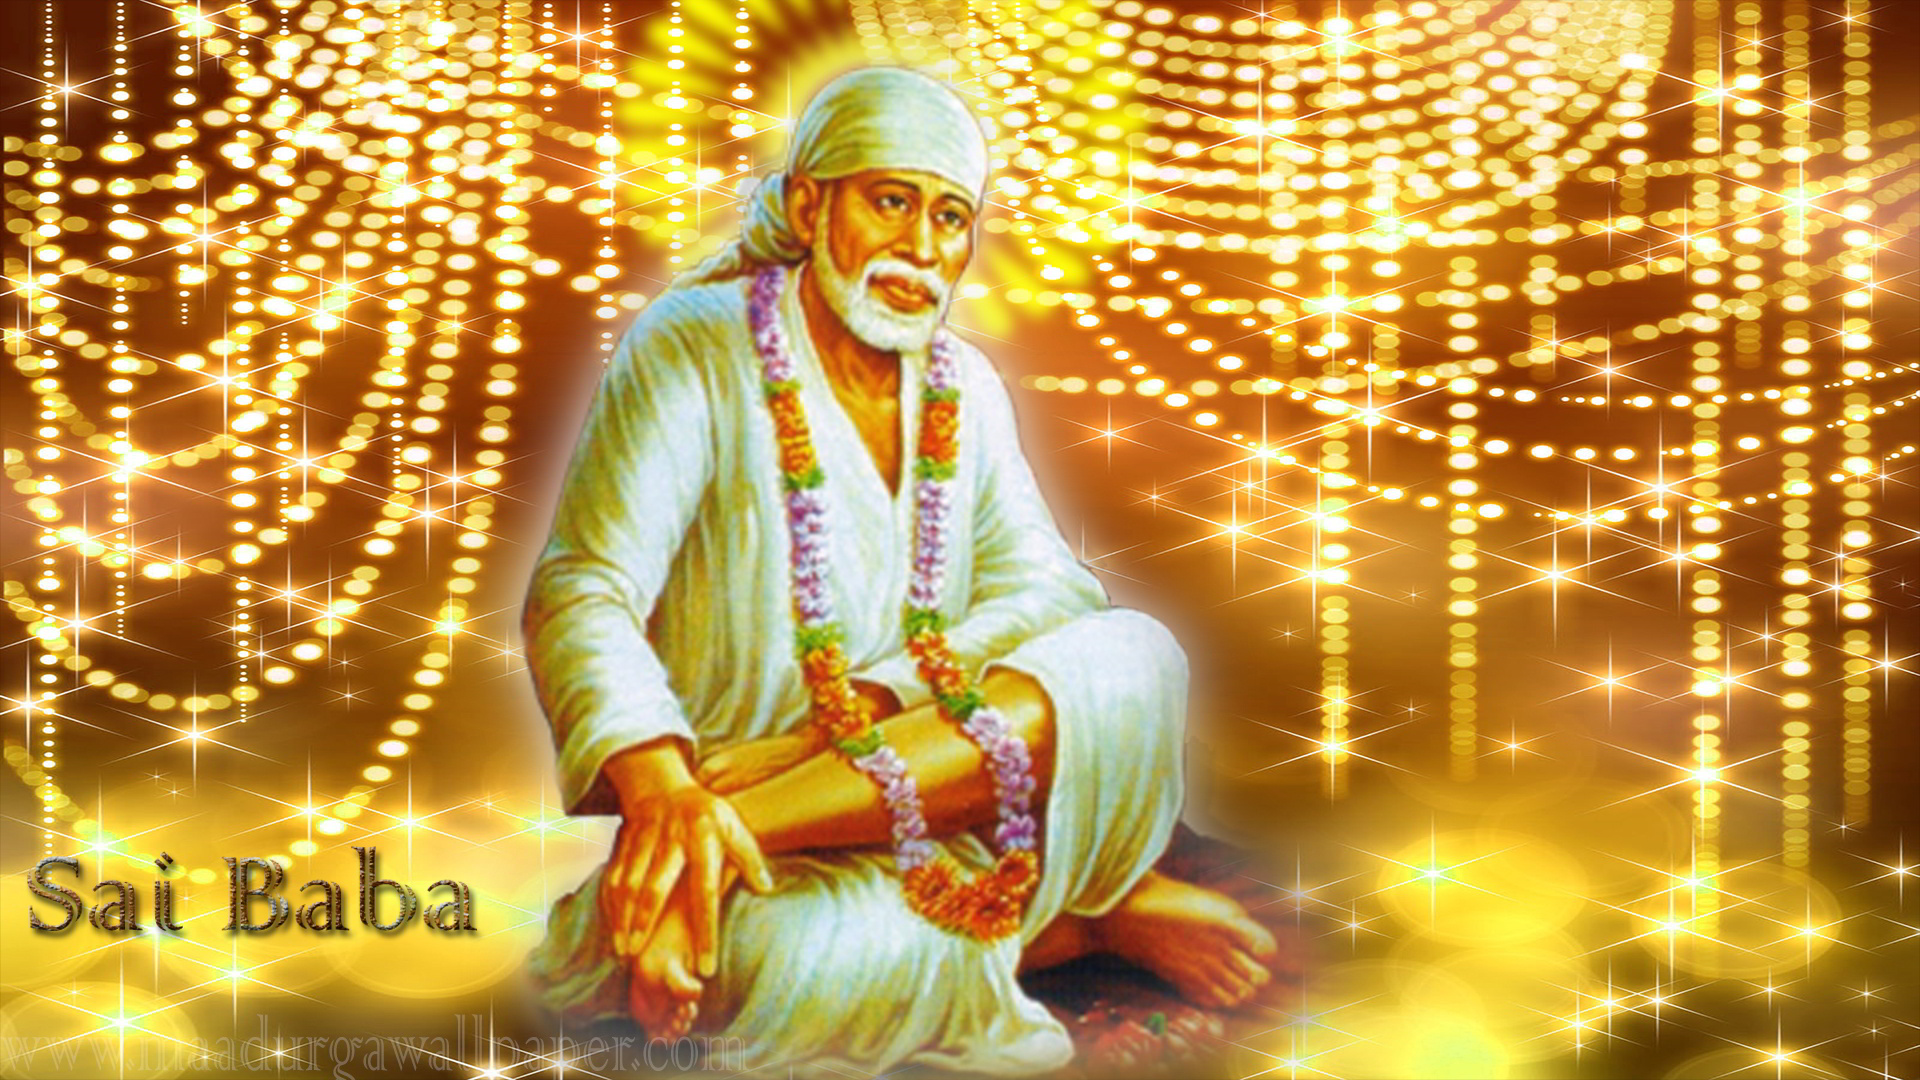 Download Sai Baba Latest Wallpapers Gallery: Download Sai Baba+Wallpapers Gallery